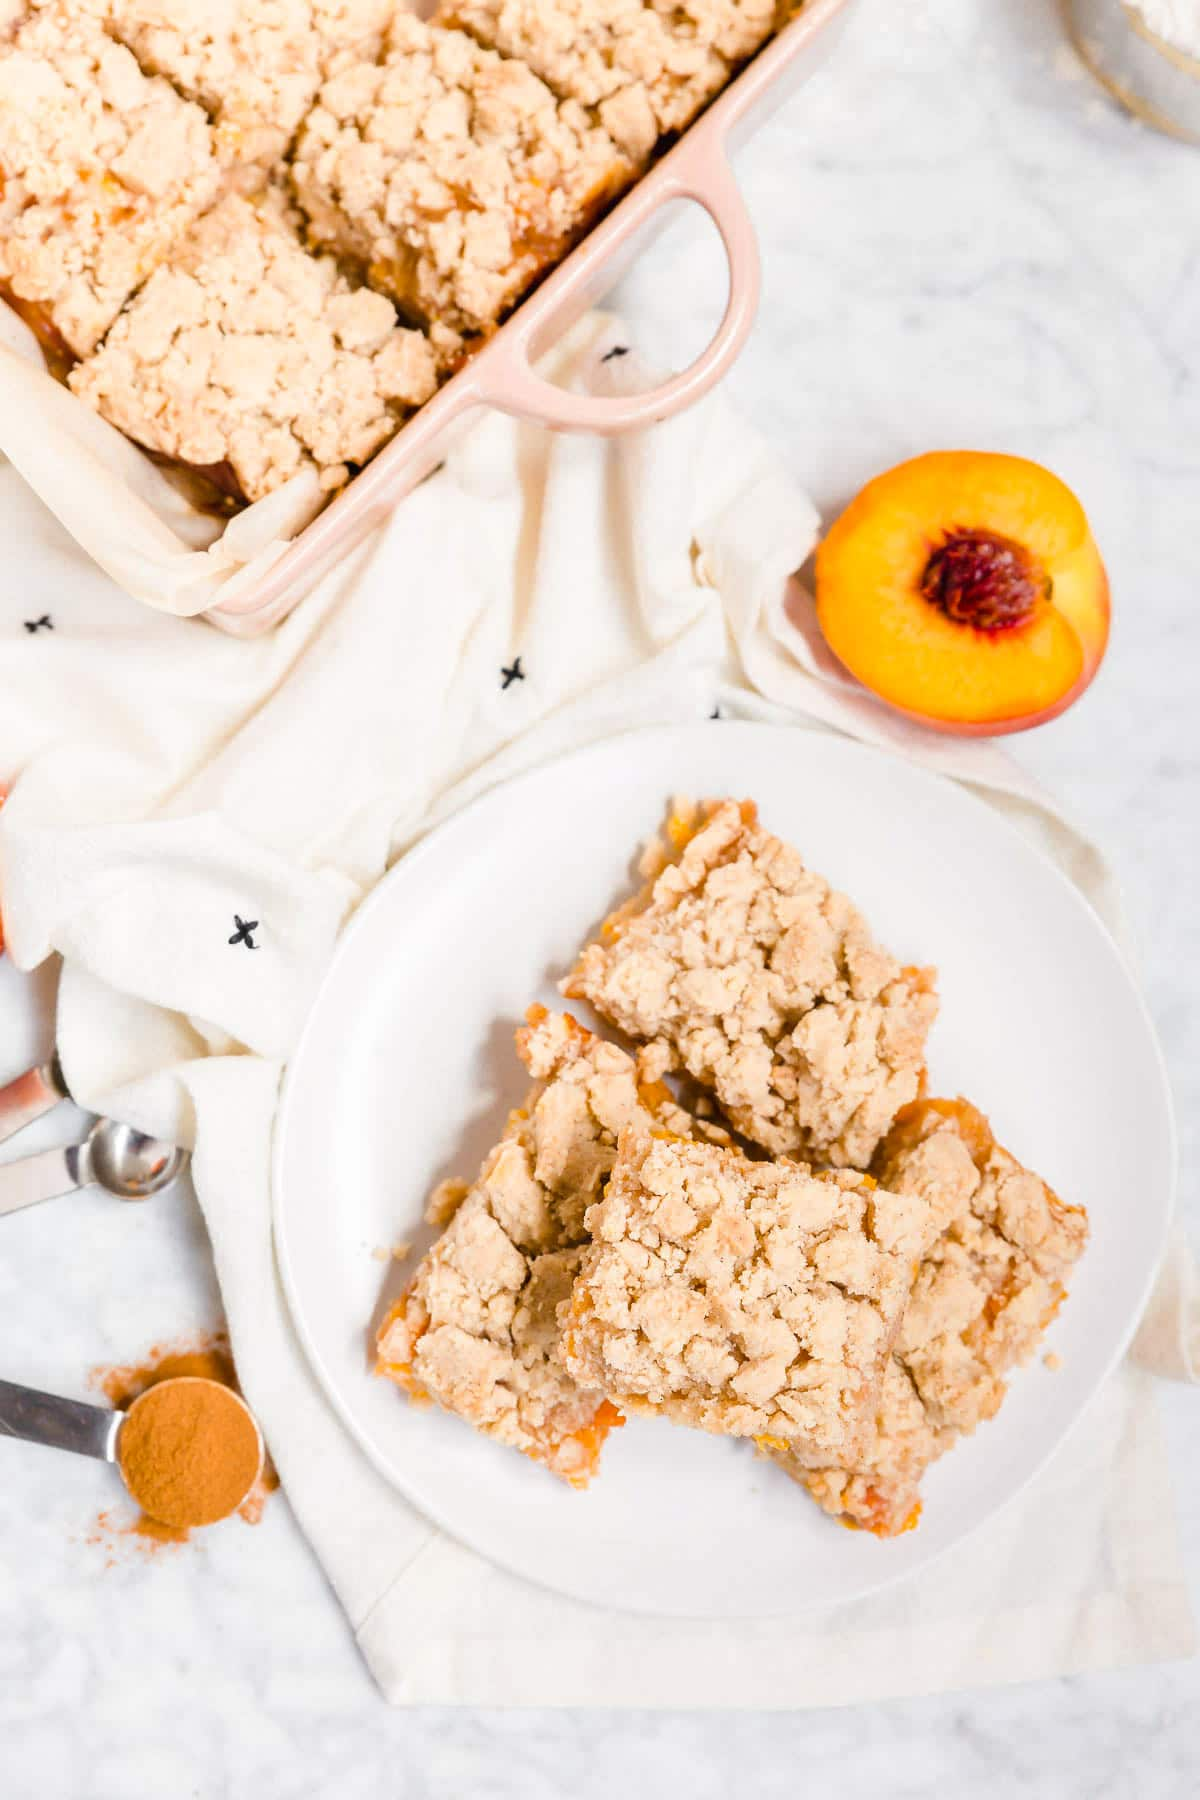 An aerial view of peach crumb bars on a plate with fresh peaches next to it.